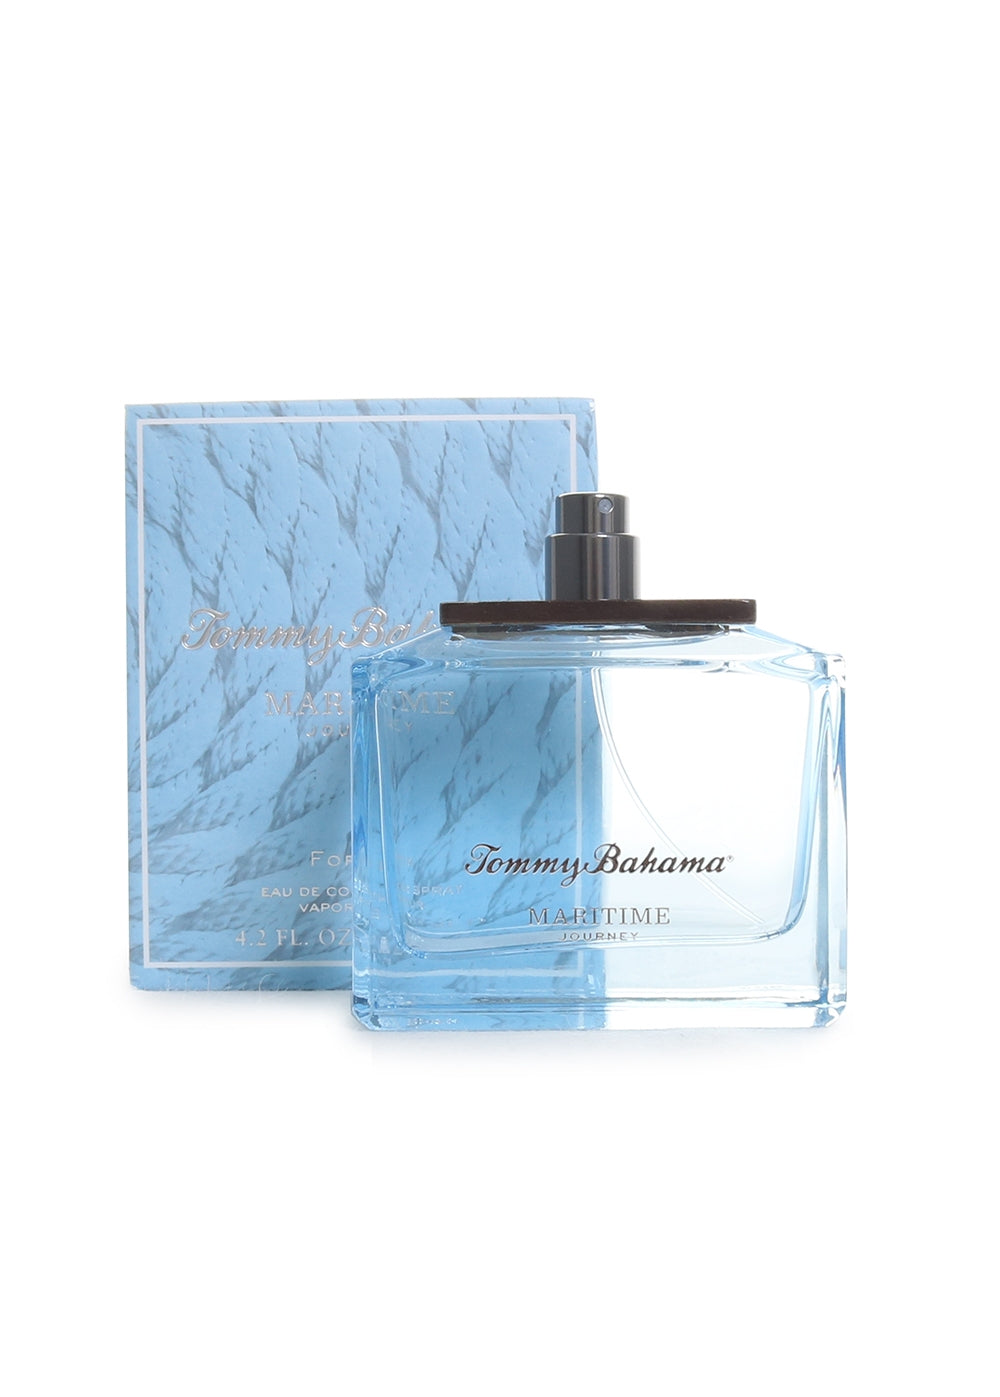 Maritime Journey Cologne